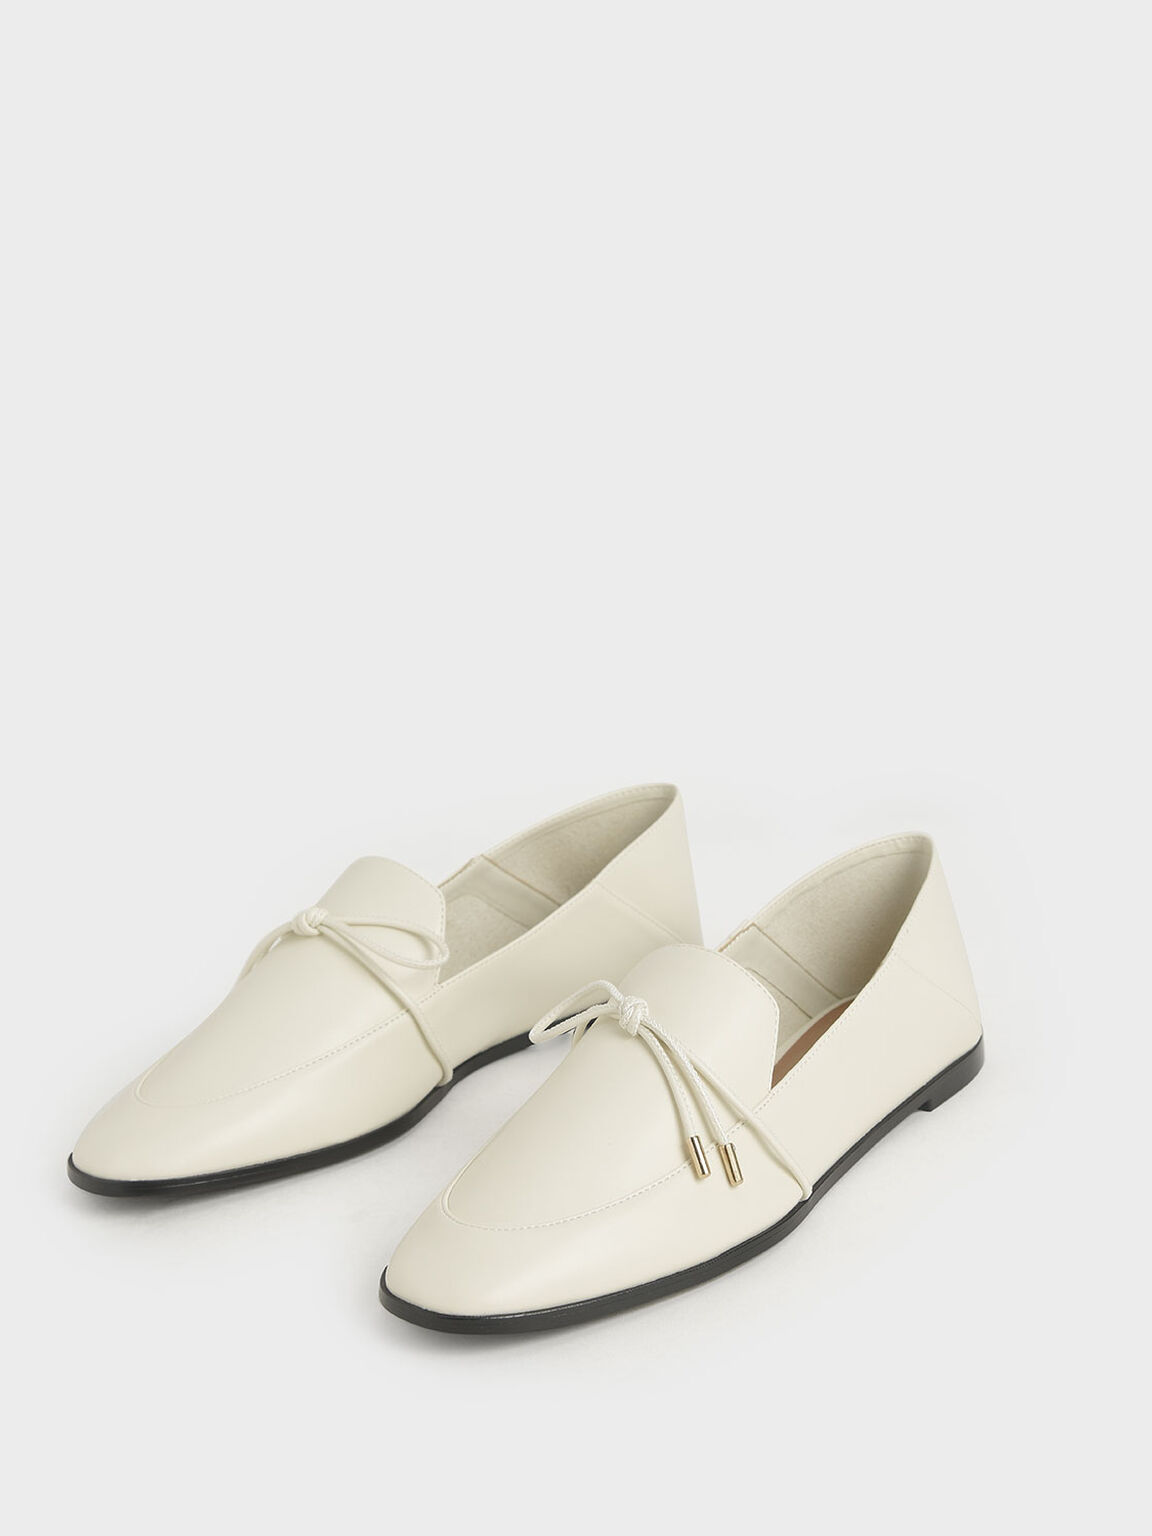 Bow-Tie Loafers, Cream, hi-res